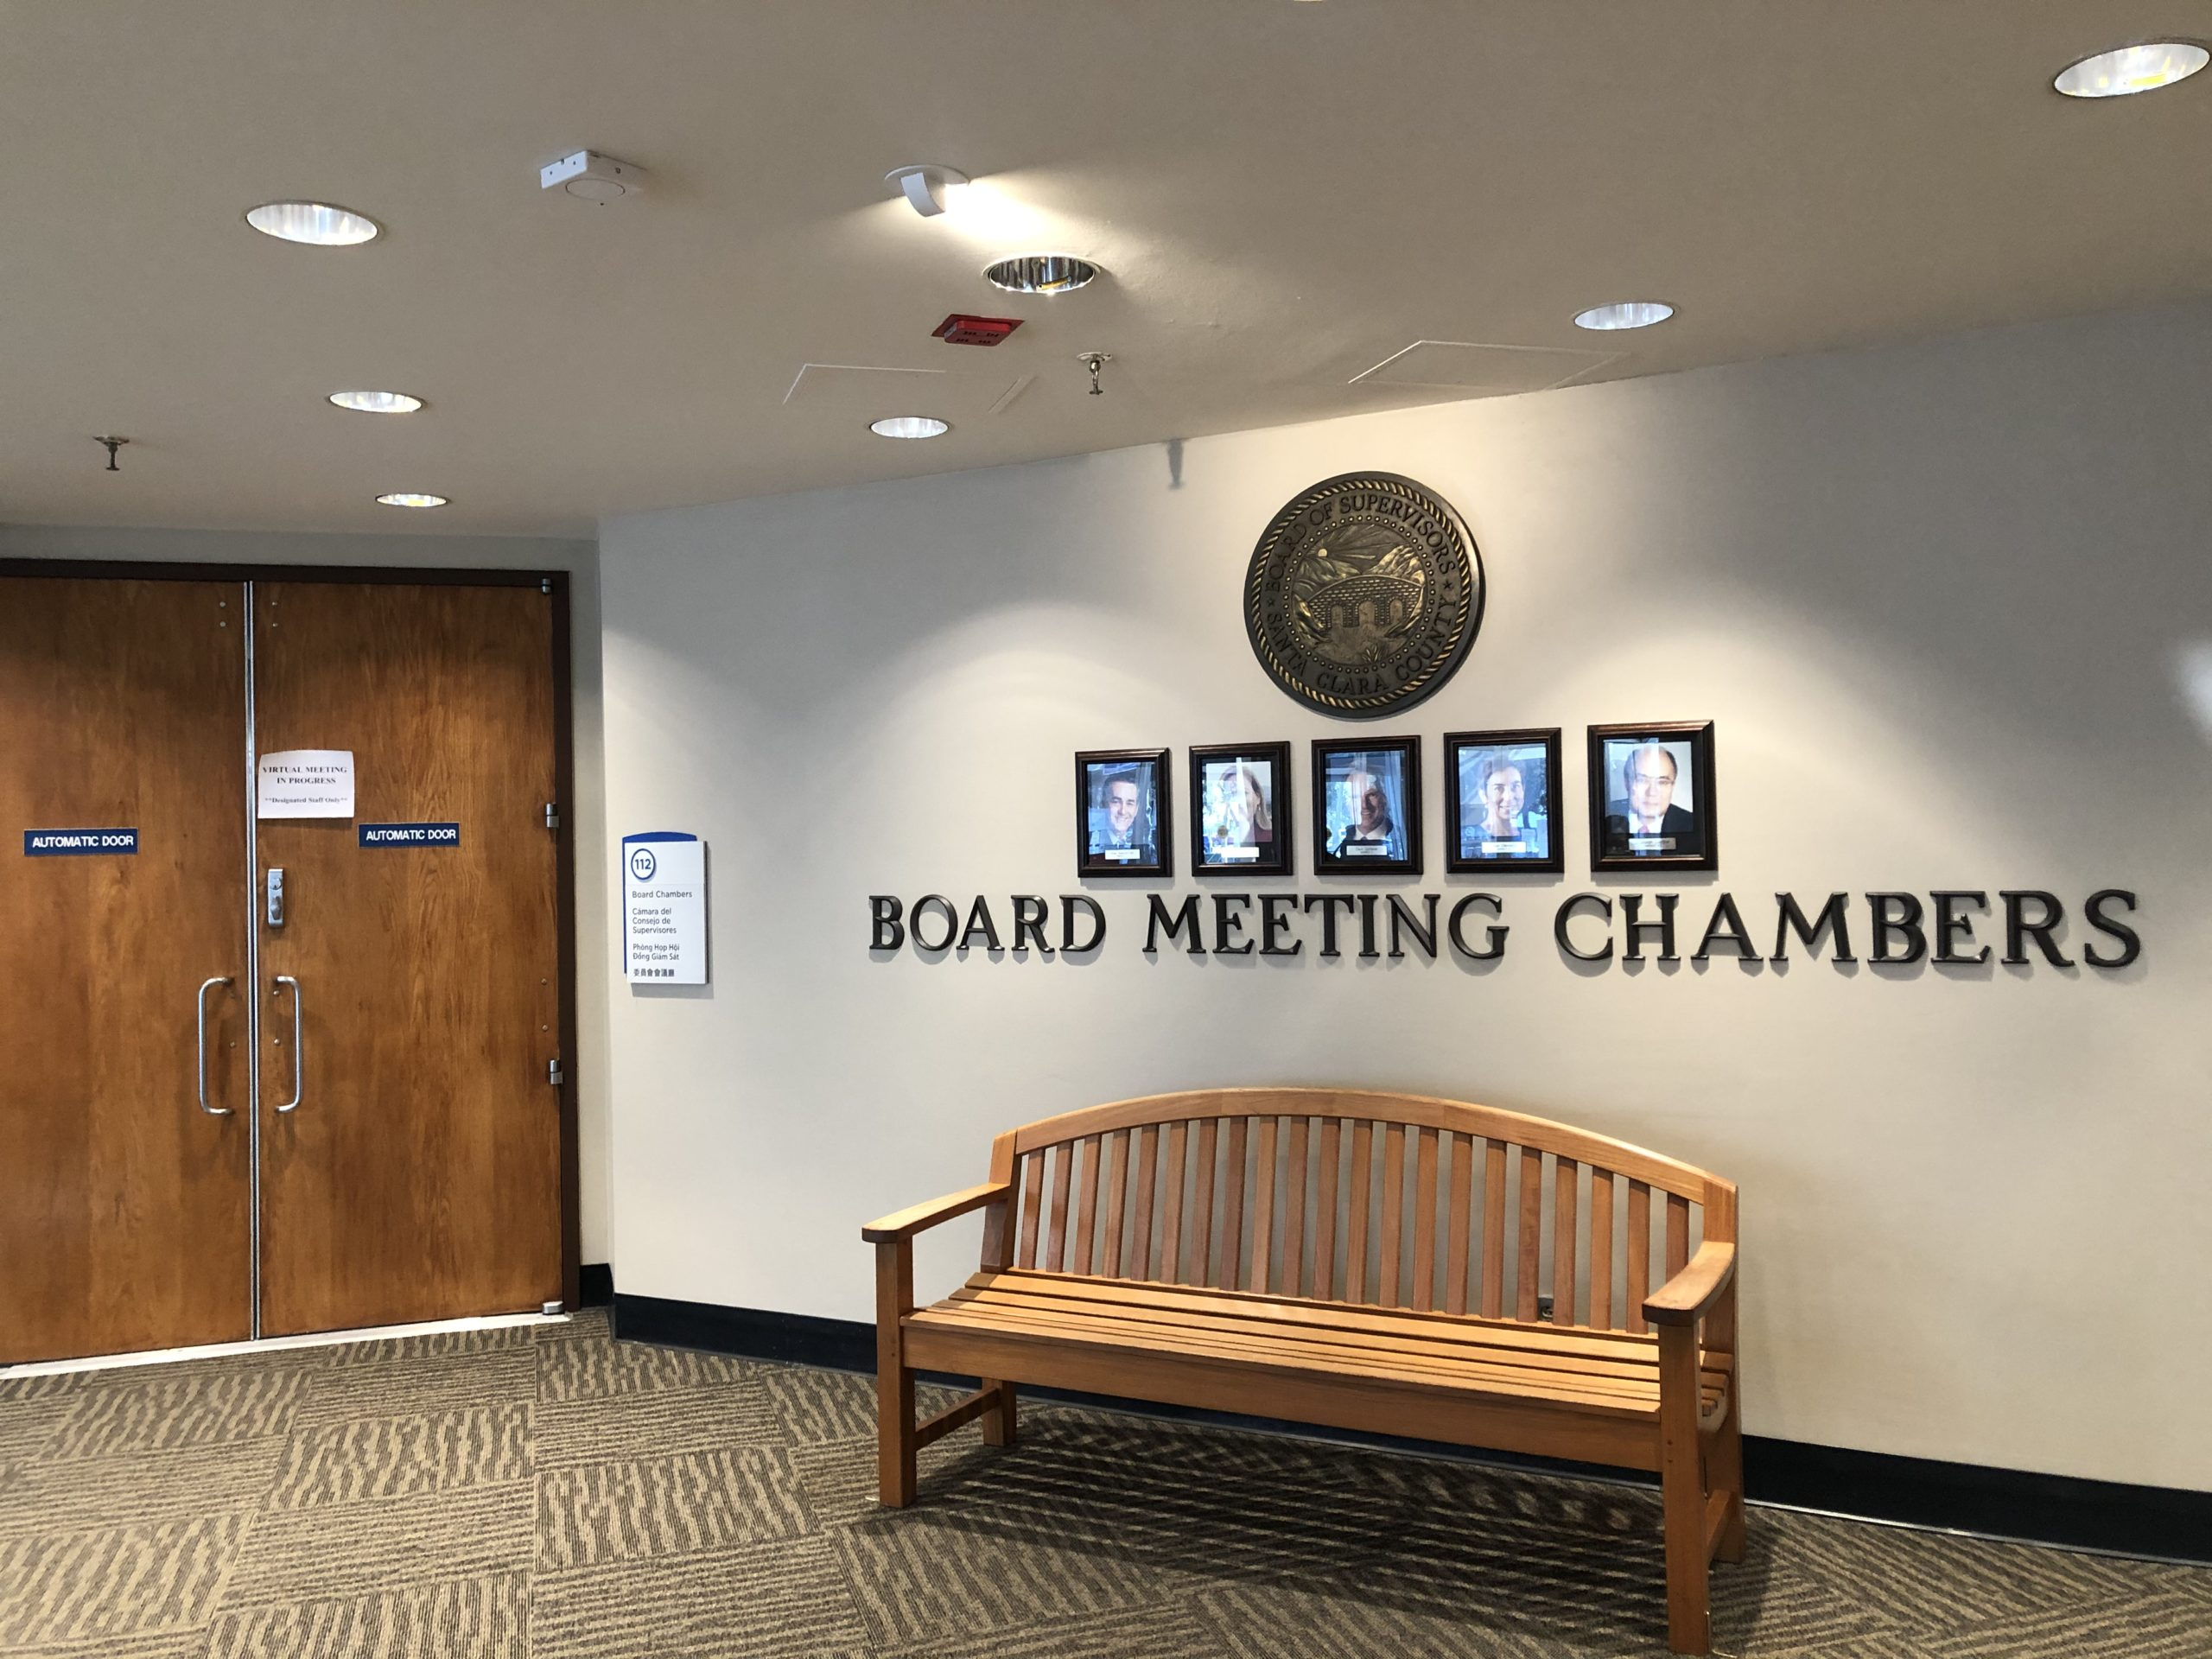 The Santa Clara County Board of Supervisors meeting chamber is pictured in this file photo.